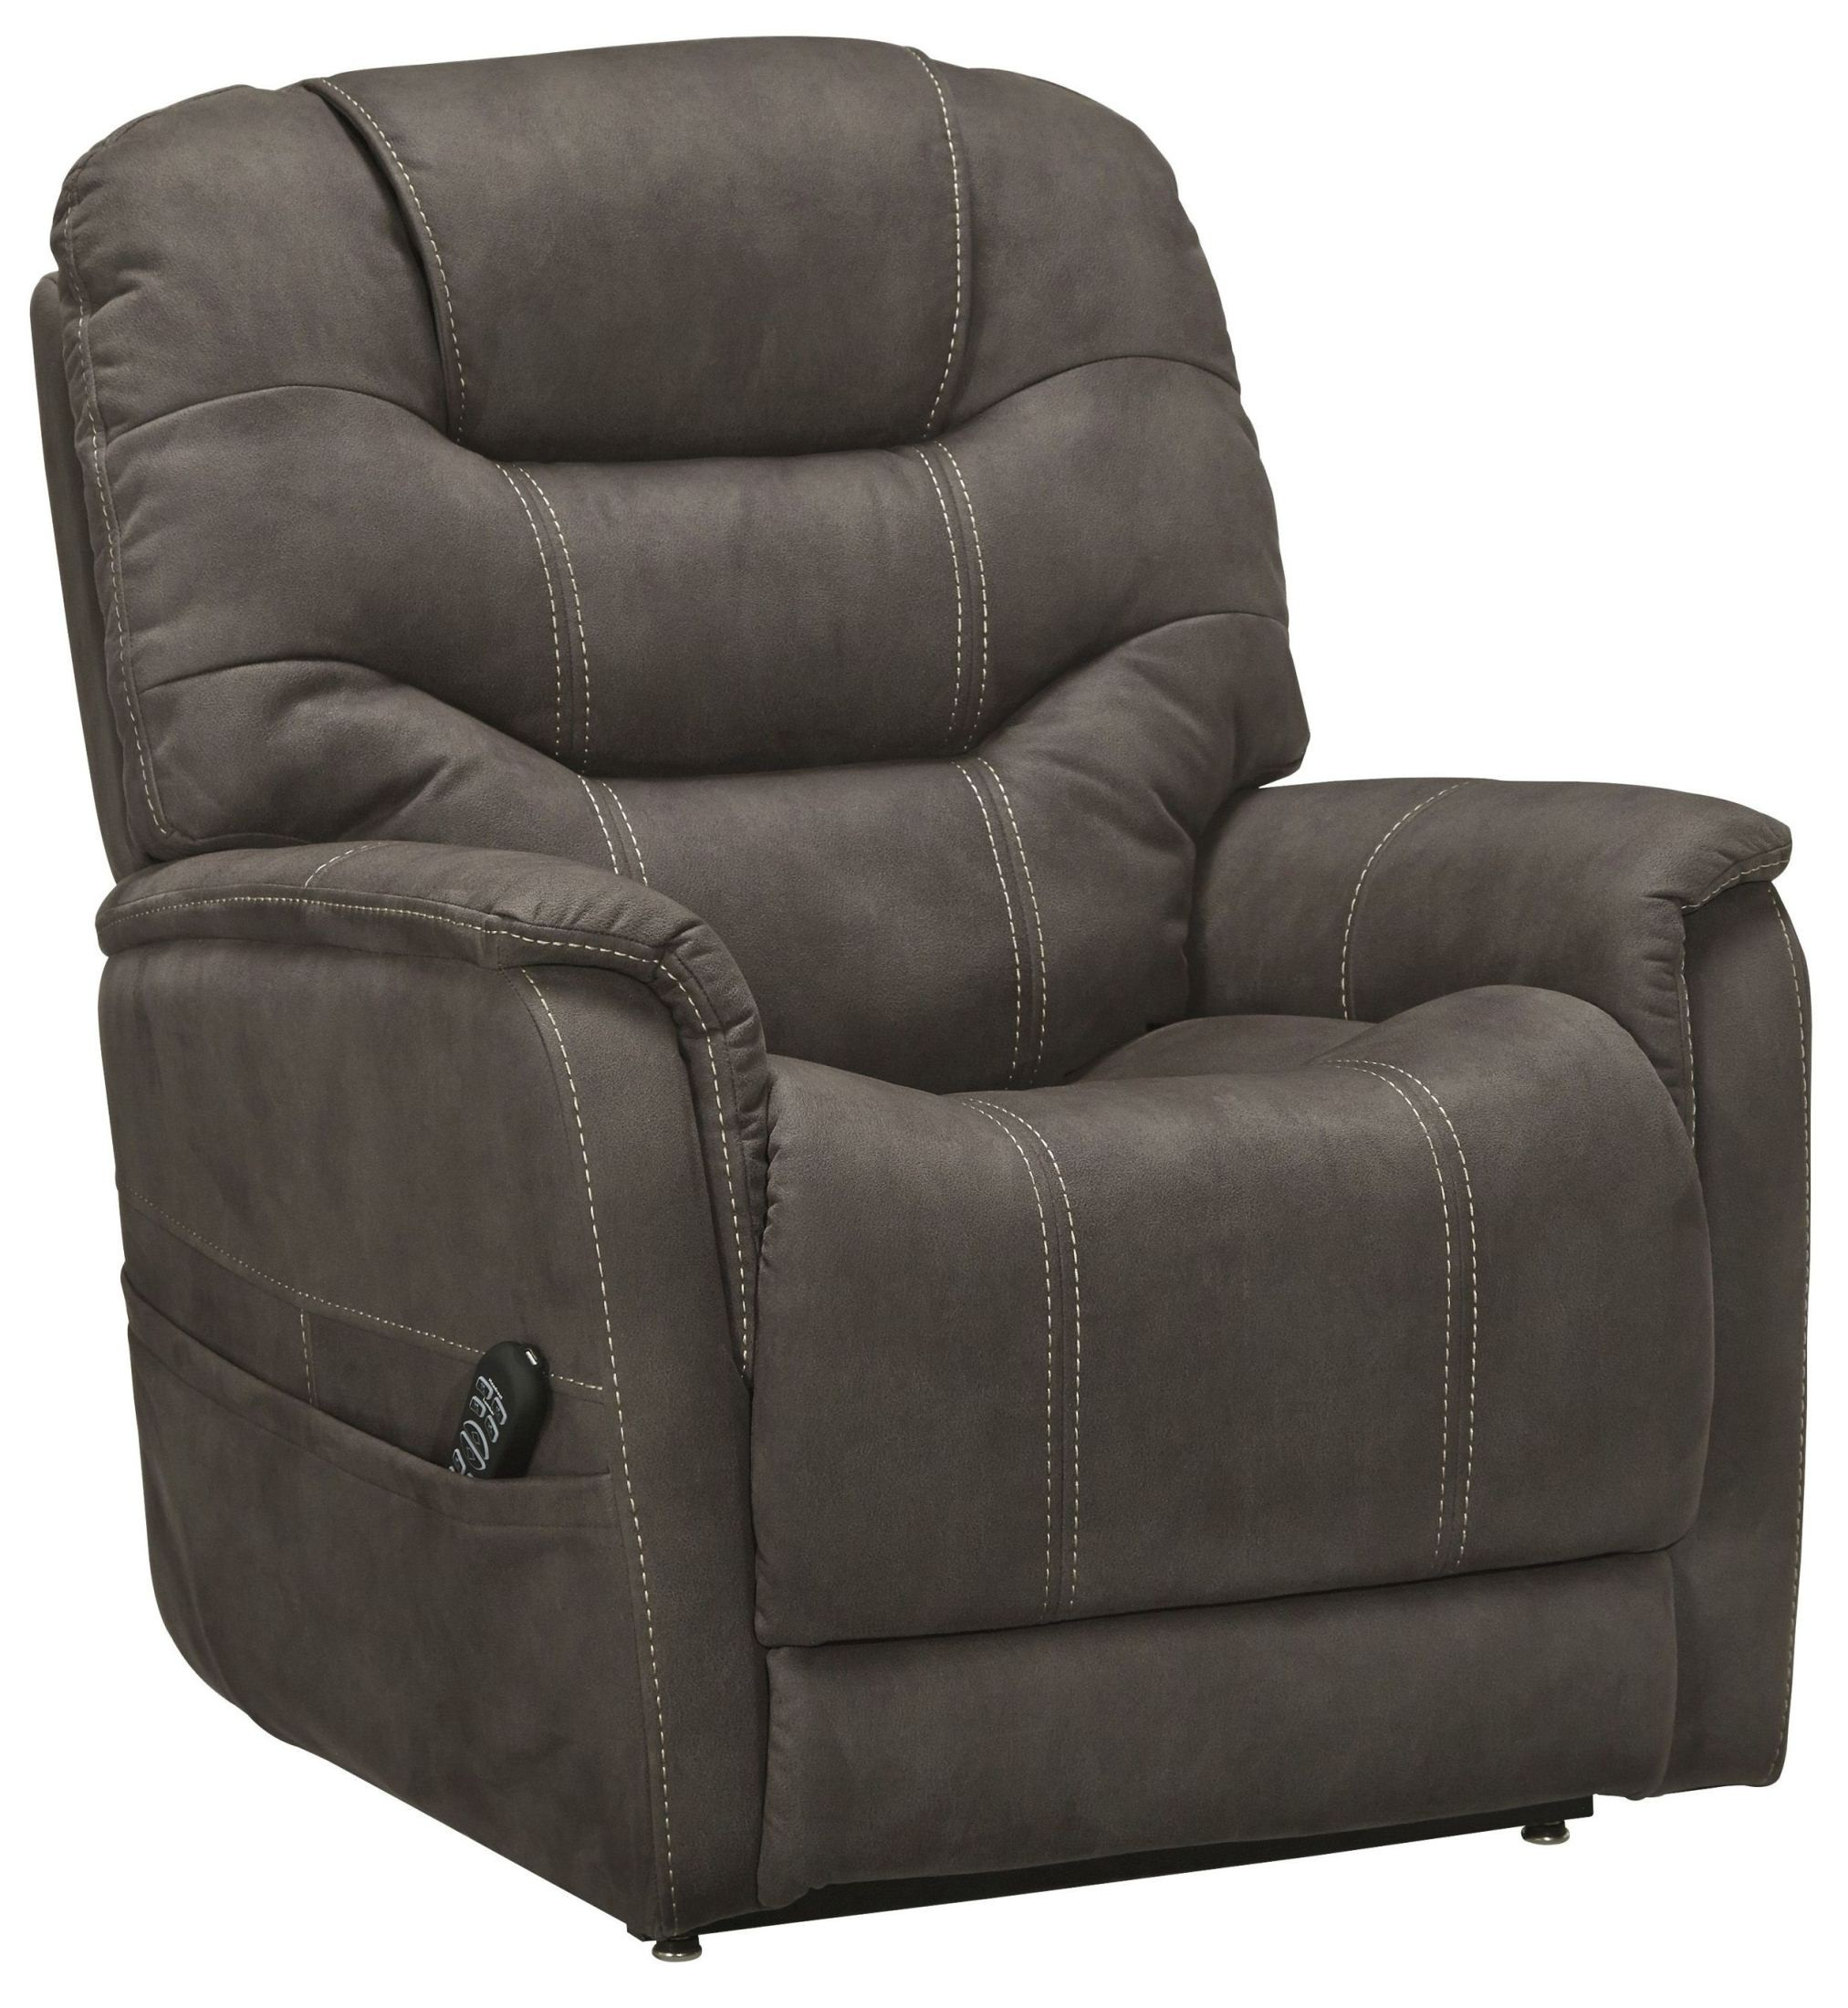 Recliners Leather Recliners Reclining Chairs And More Home